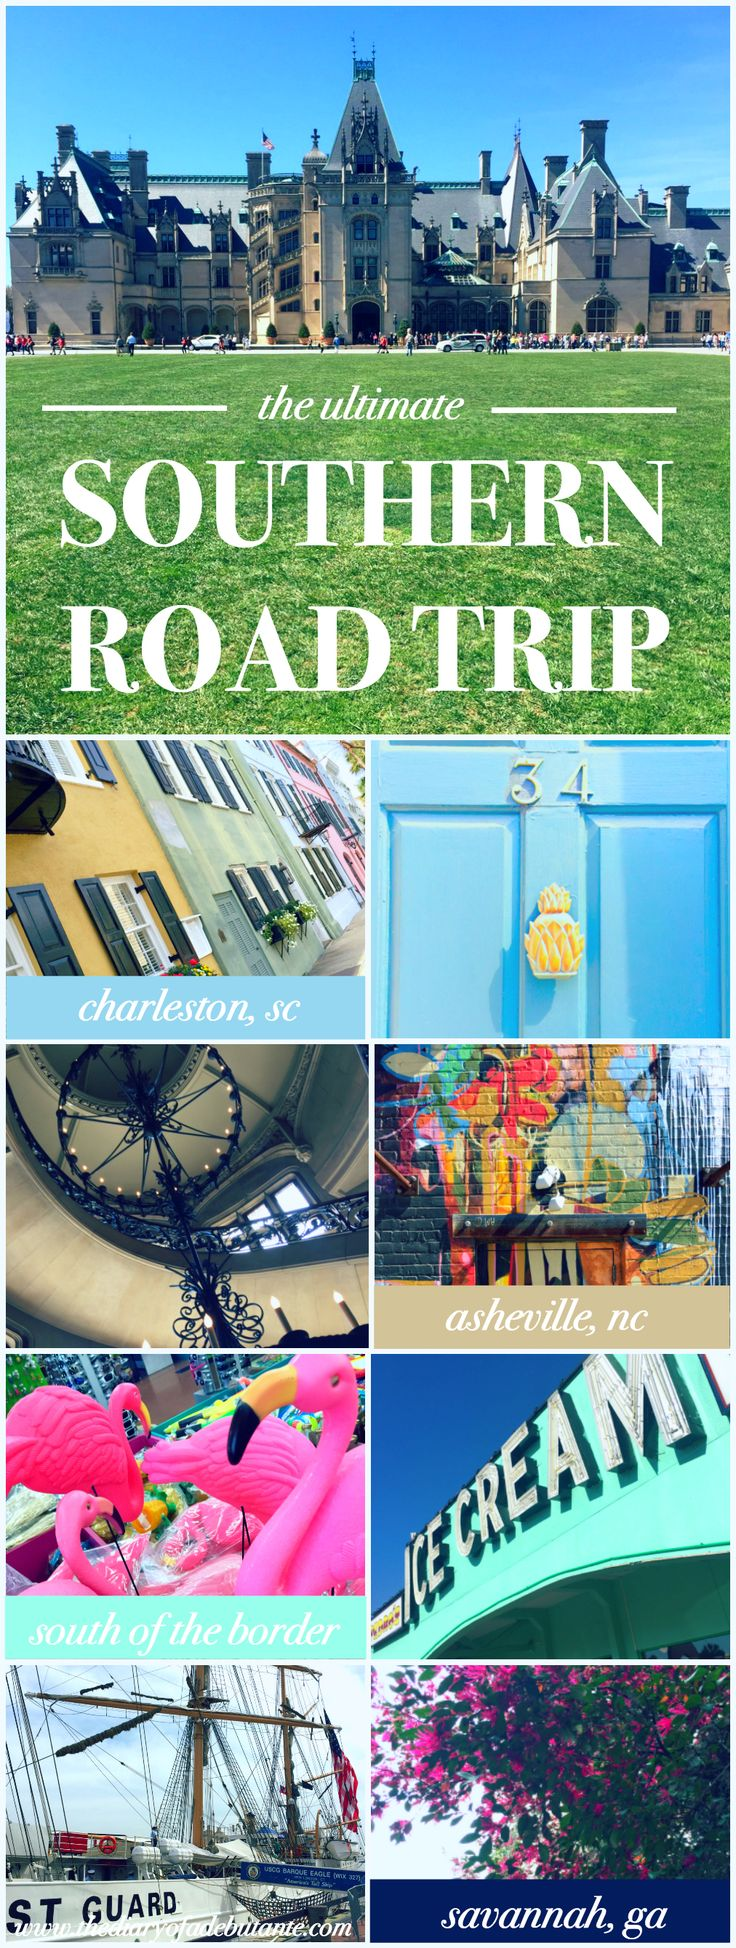 Ultimate Southern Road Trip, Southern Road Trip, American Road Trip, Hamer, South Carolina, Stephanie Ziajka, Diary of a Debutante